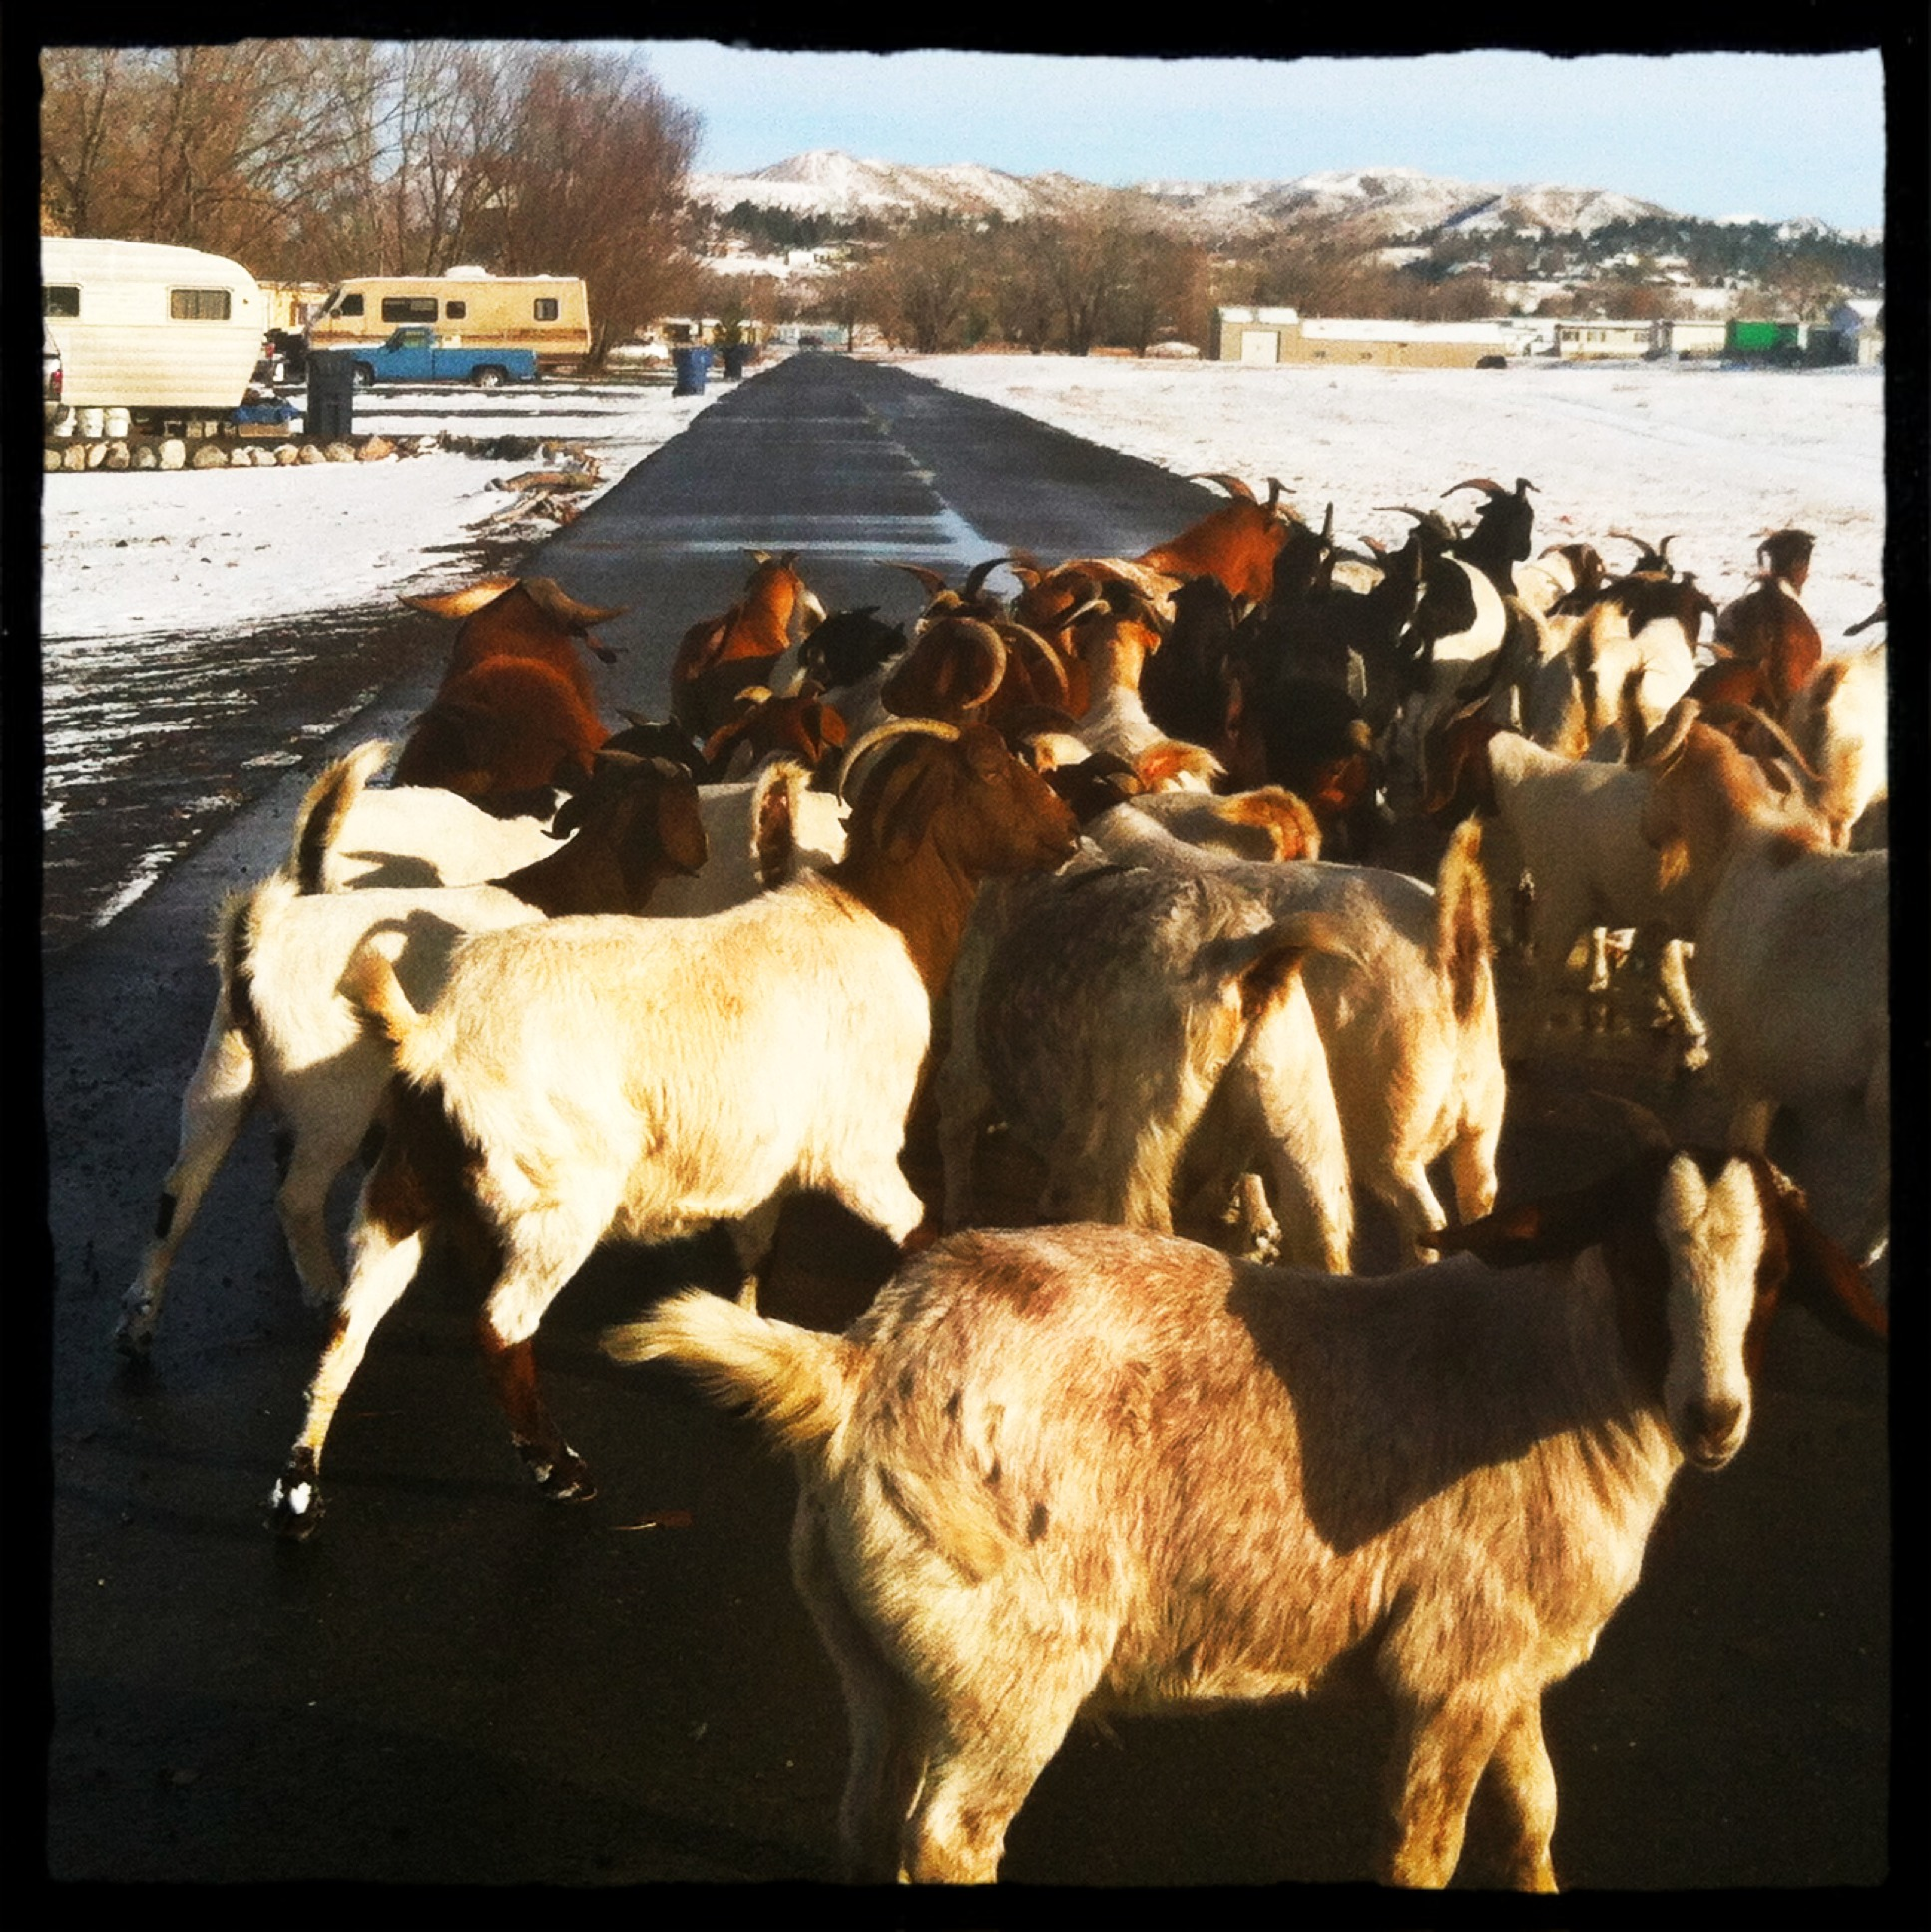 Goats in Trailer Court